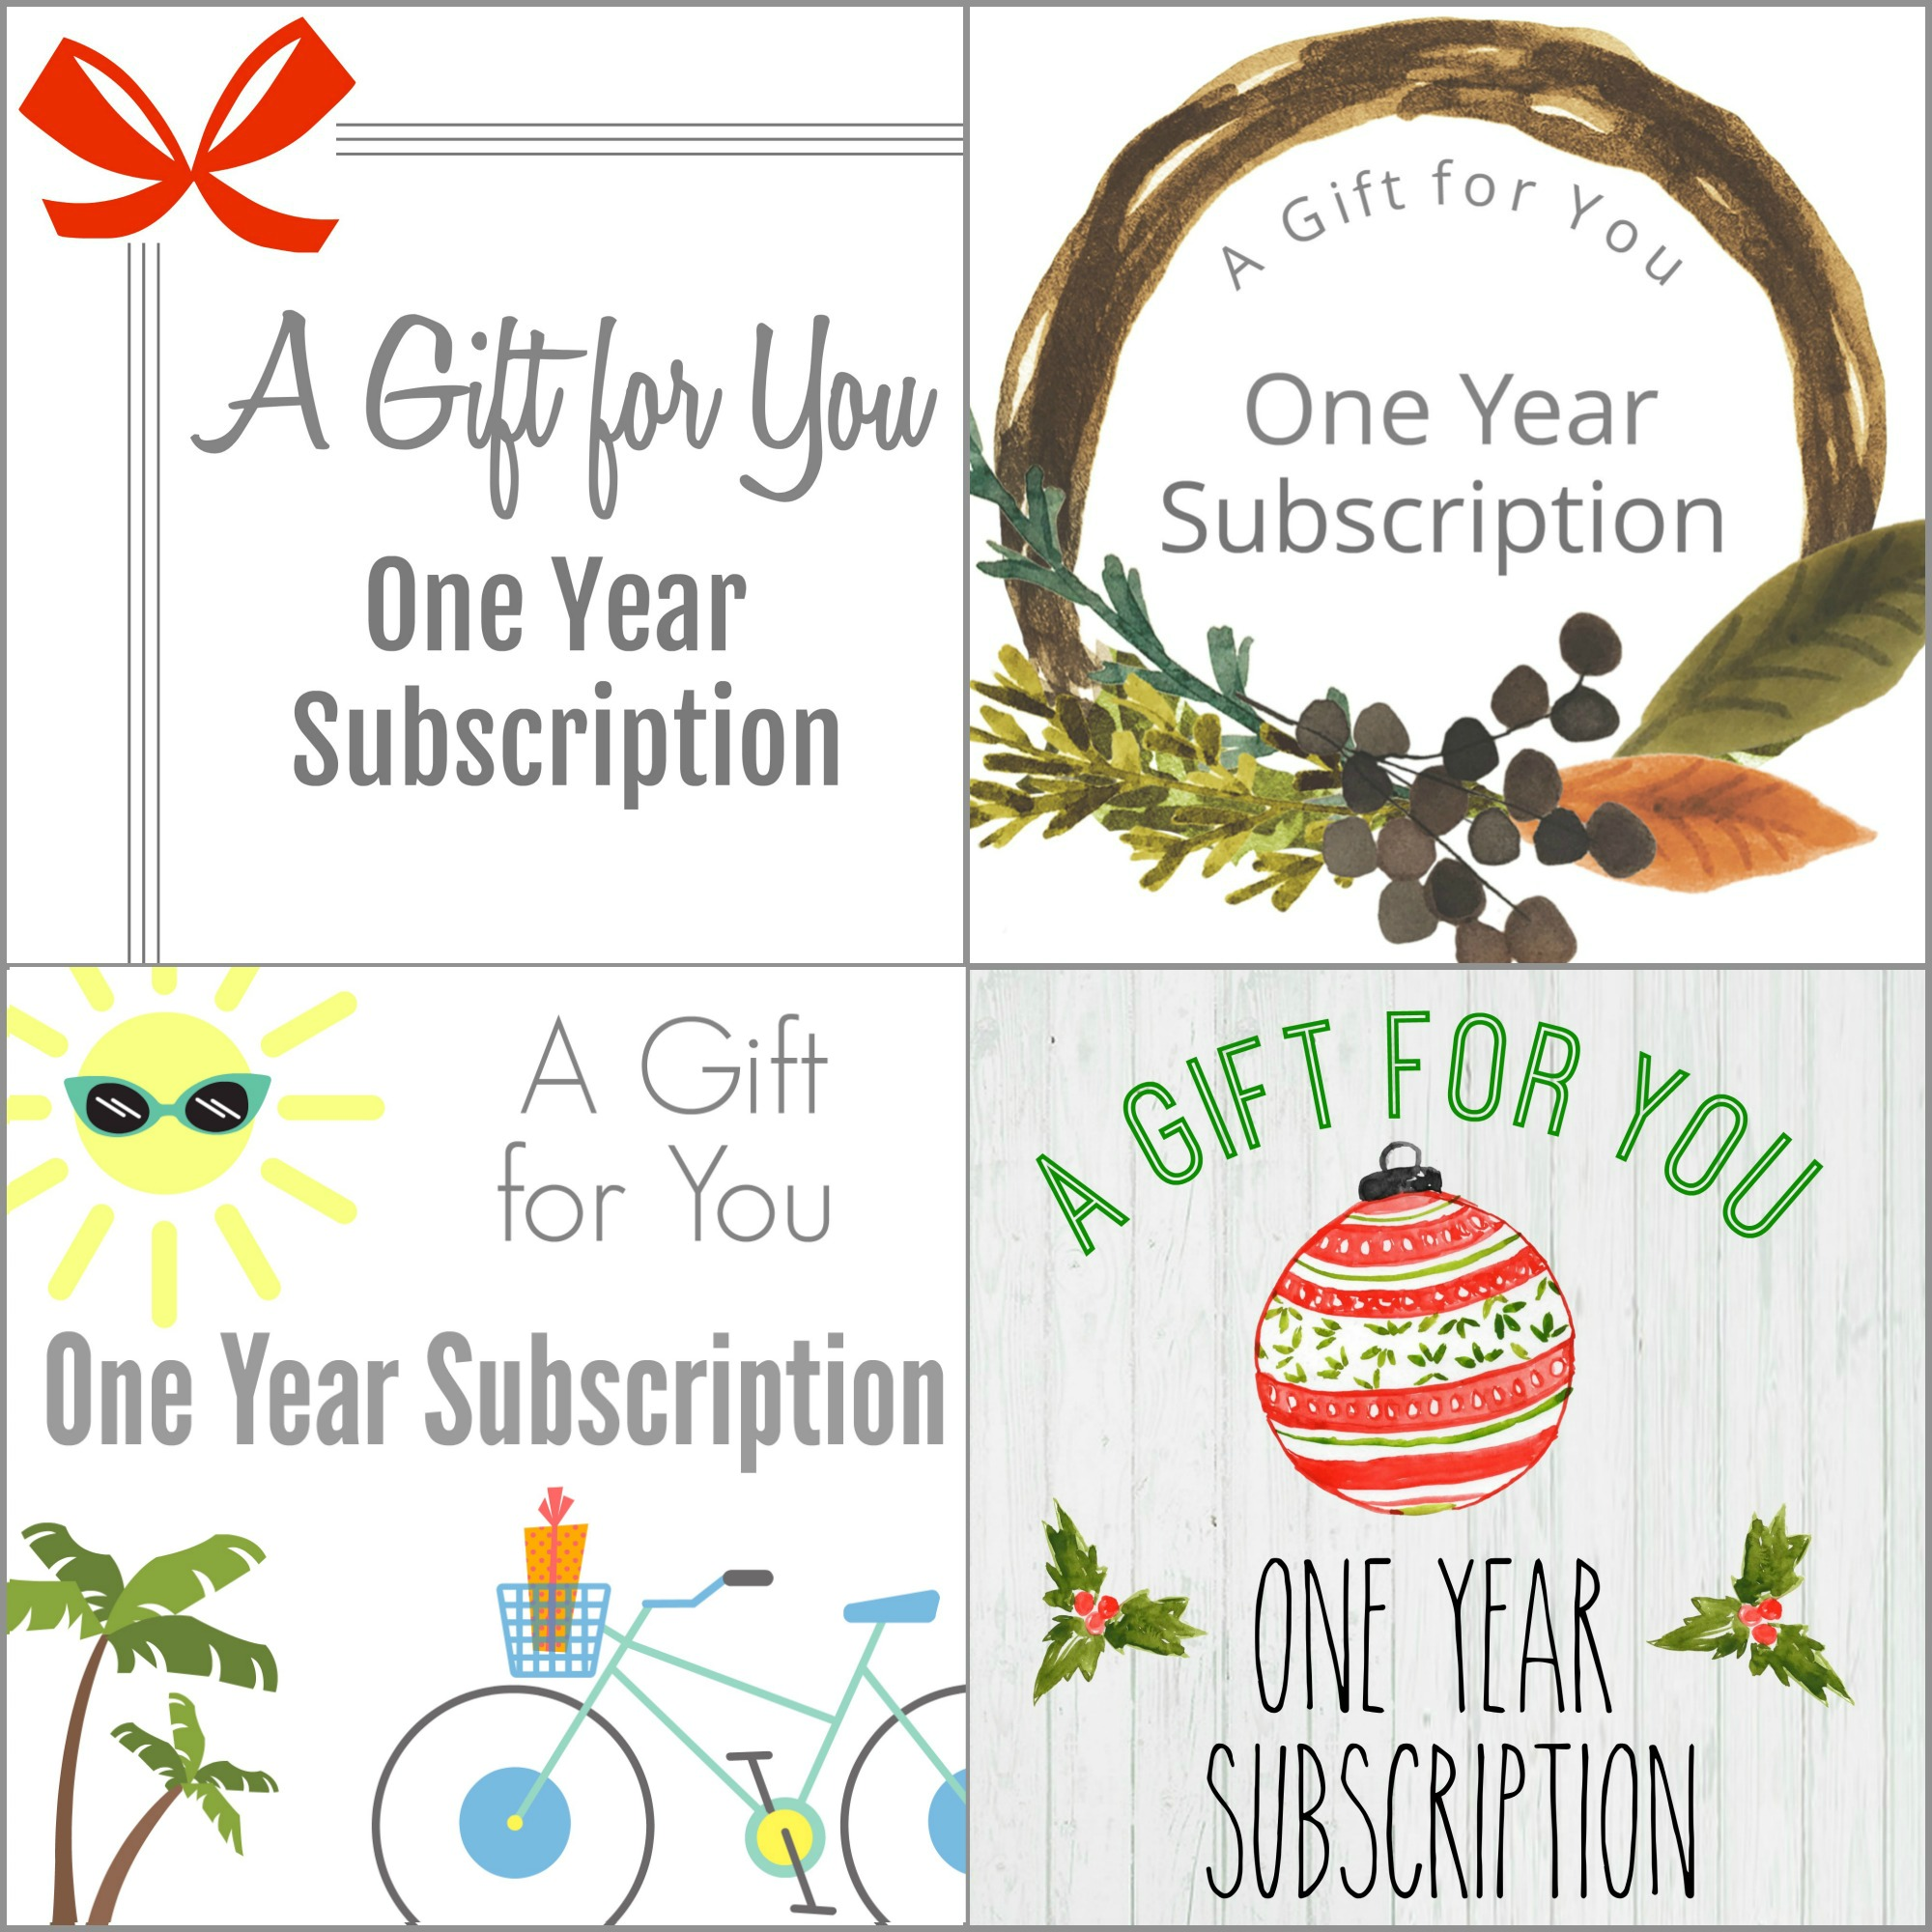 how to give a magazine subscription as a gift